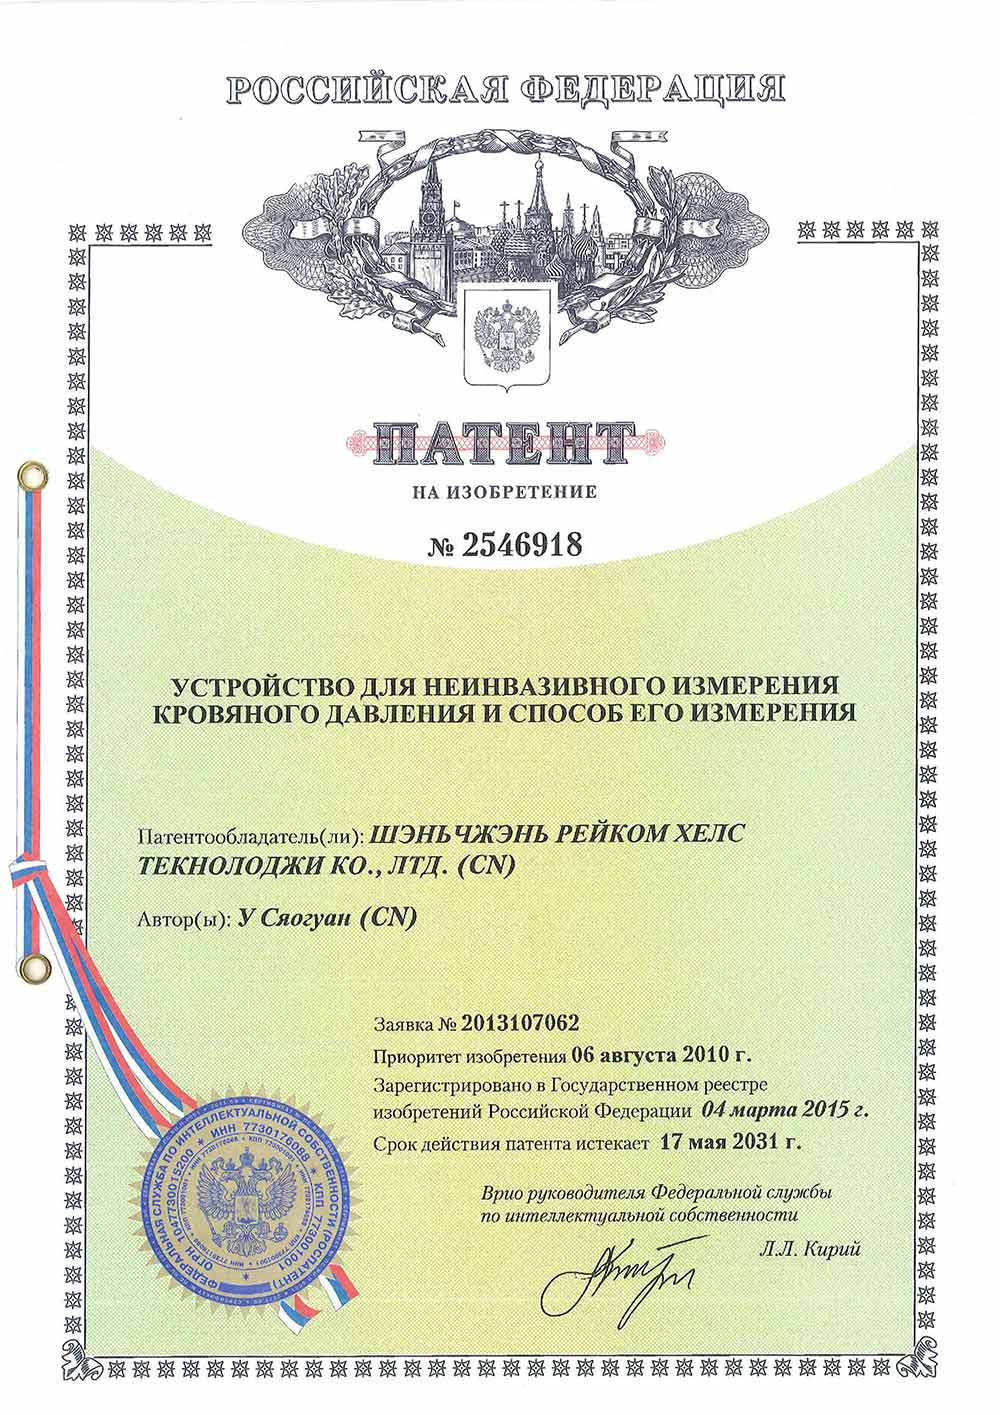 Invention Patent in Russia